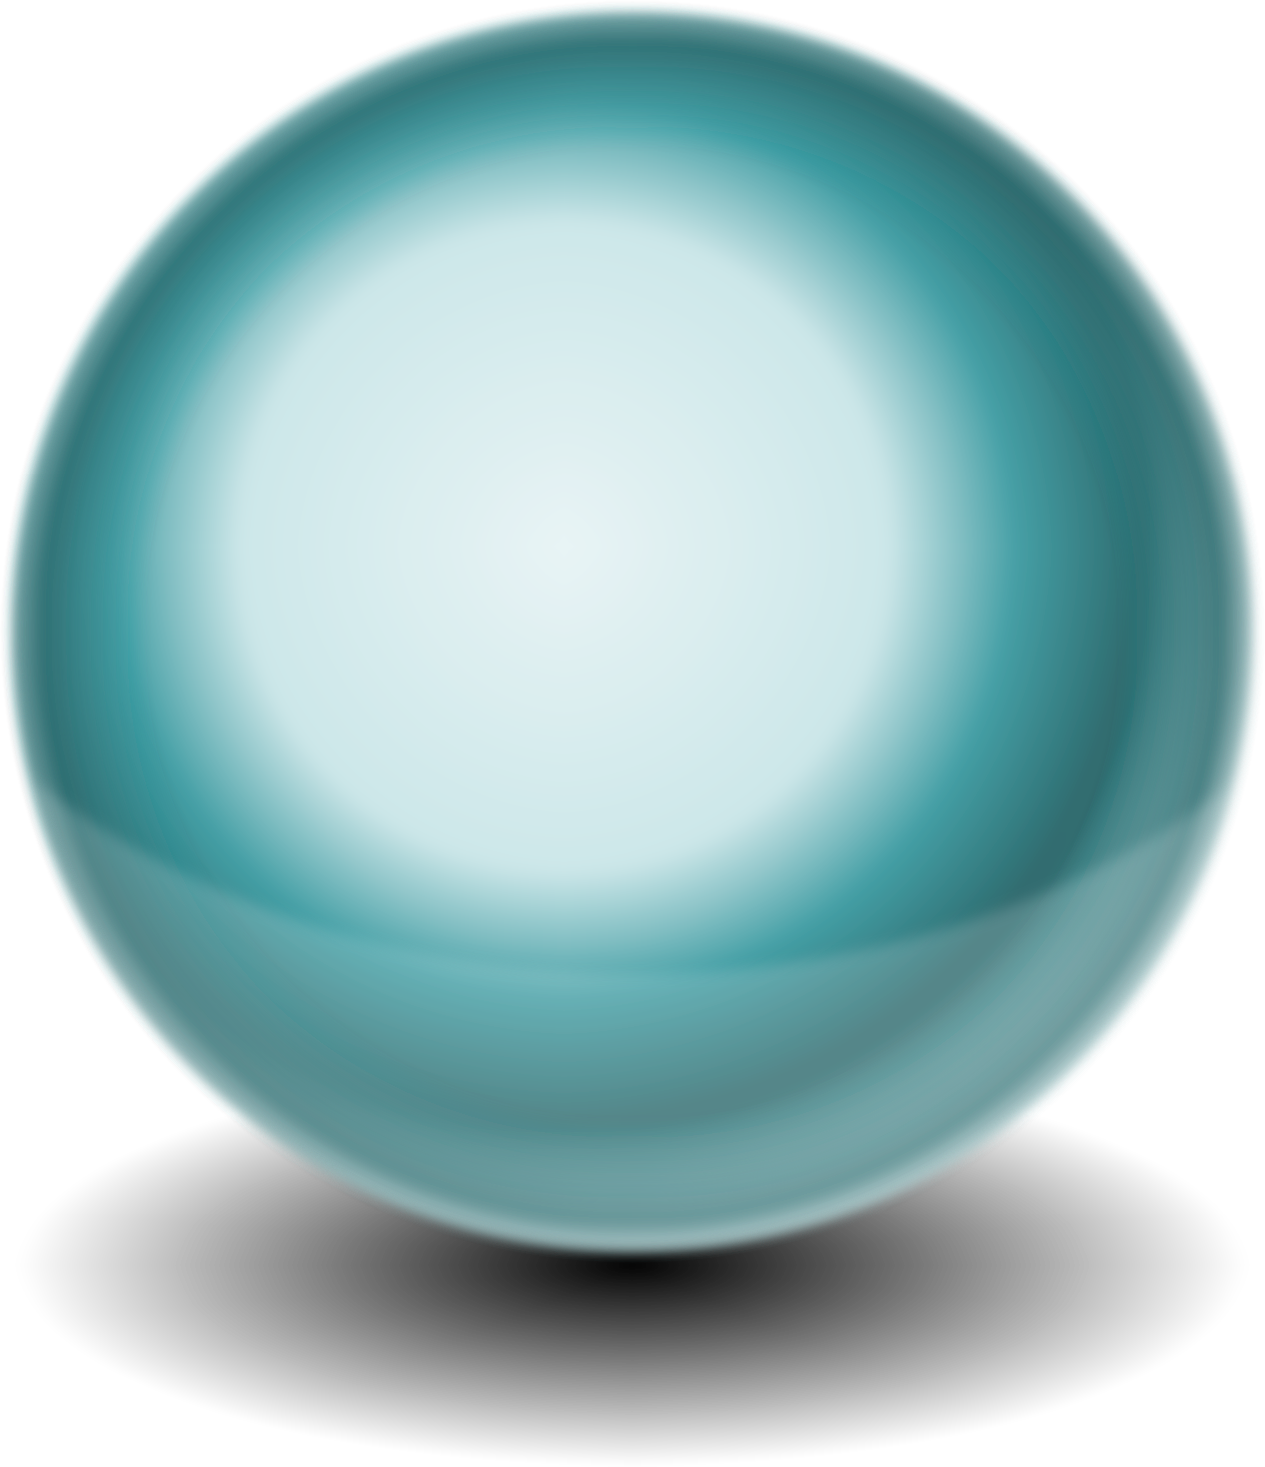 Free Download Orb Png Images image #25367